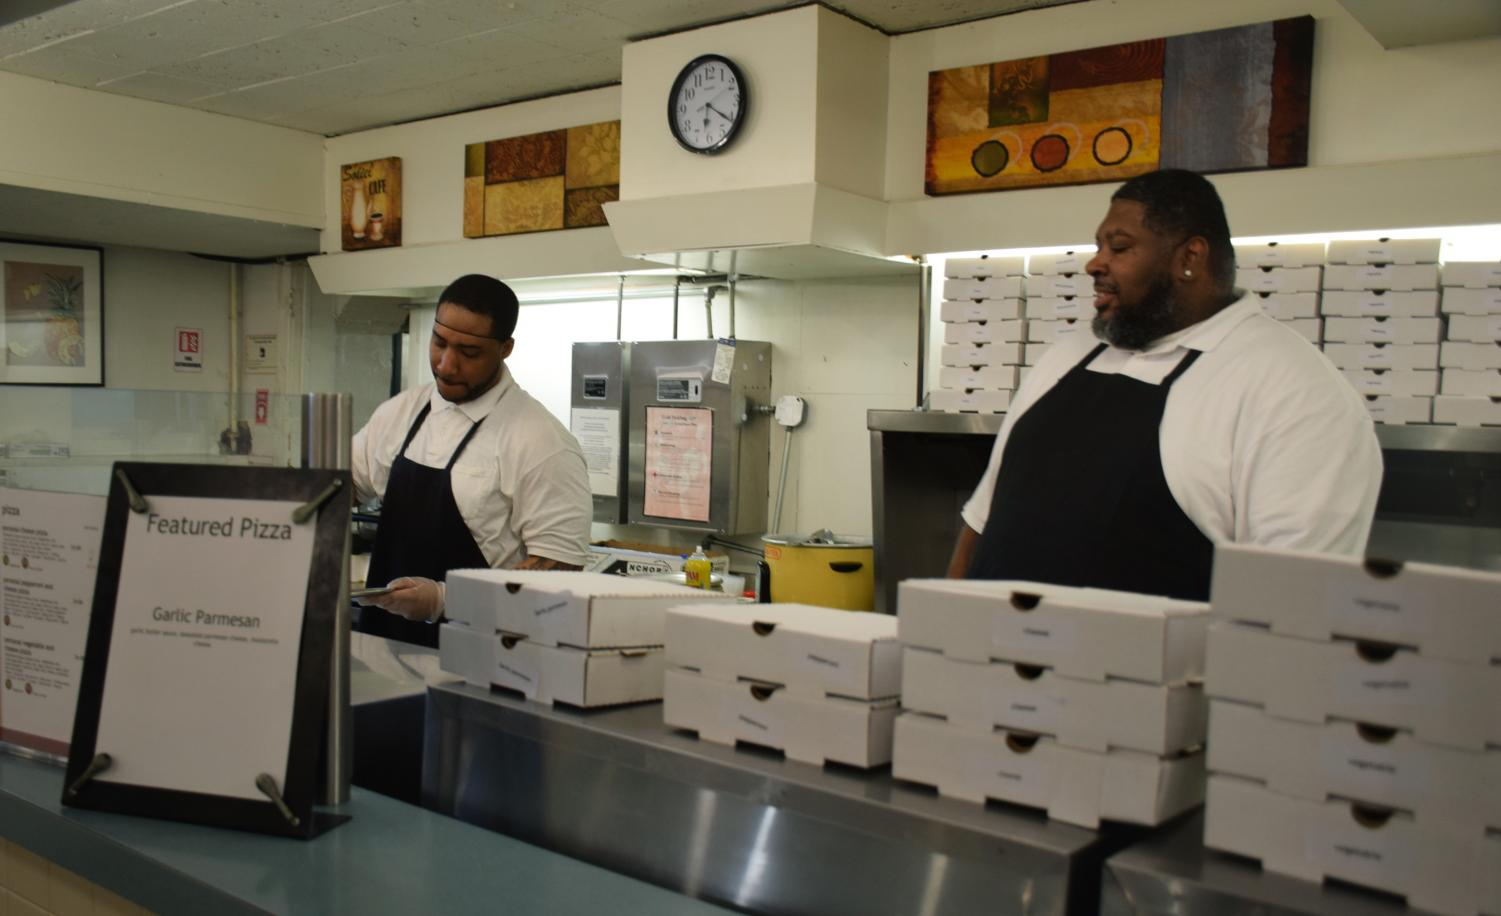 CDS workers prepare pizzas in the Wilder DeCafé. Hourly employees continue to express concerns over the impacts of the AAPR recommendations.